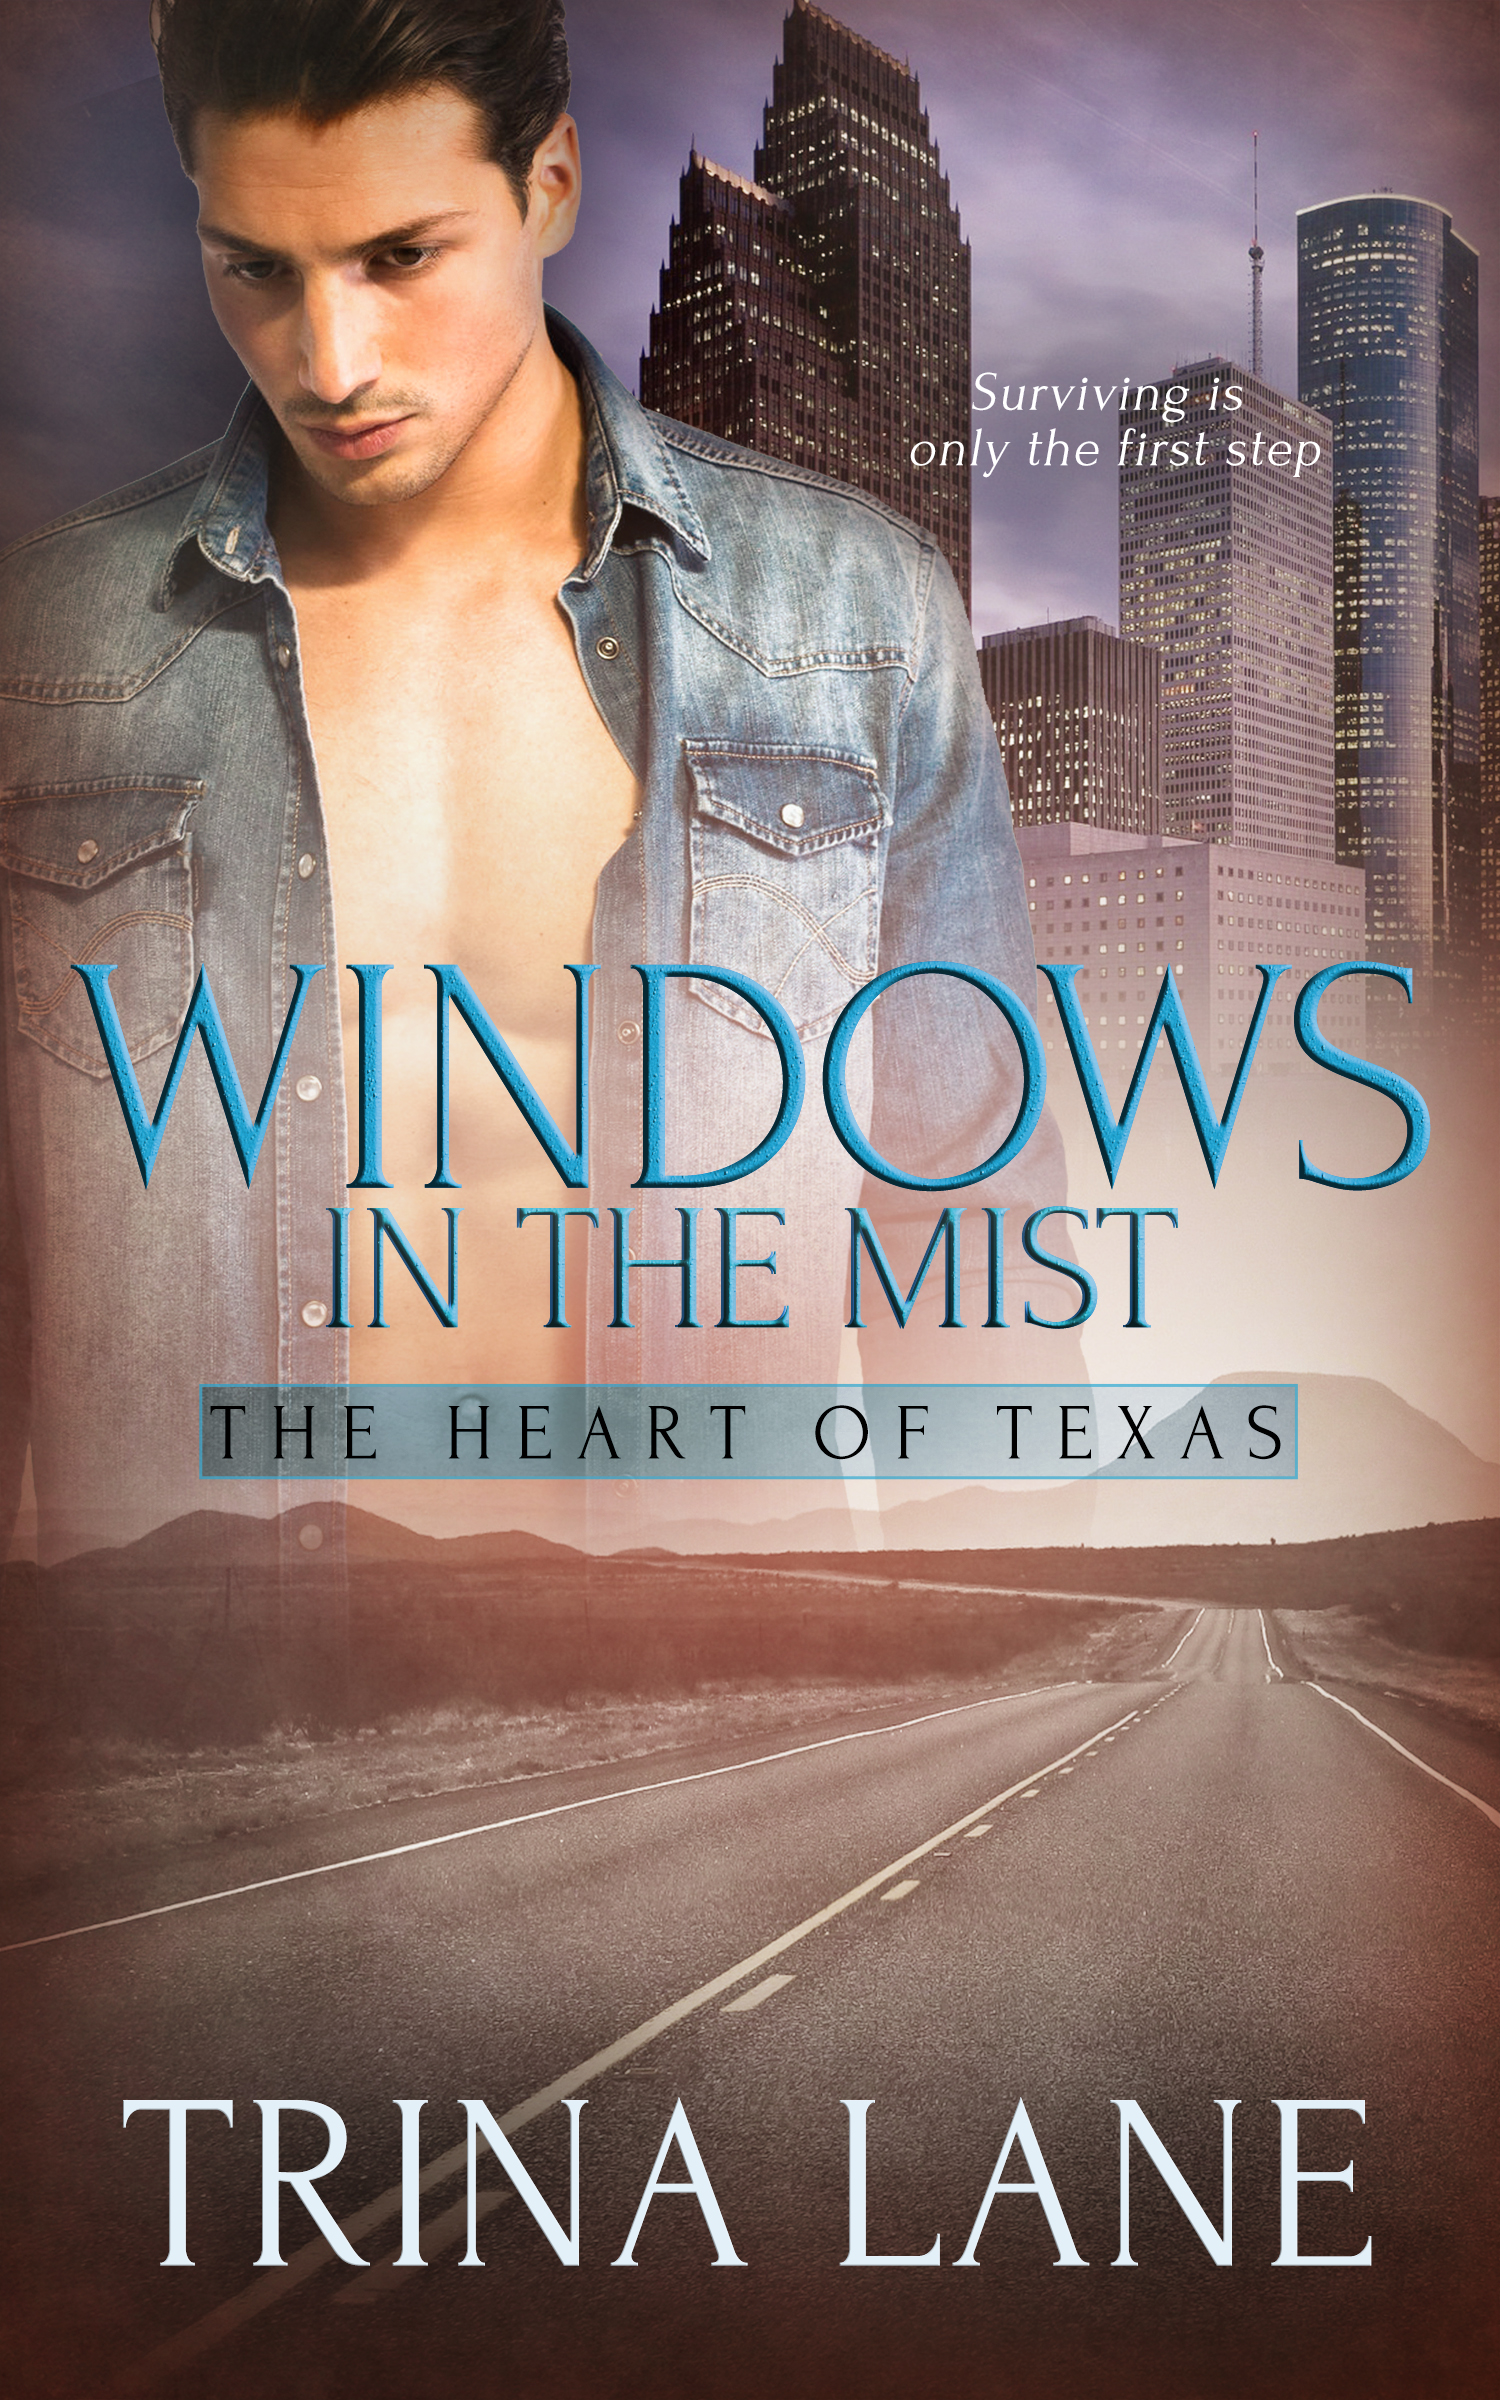 Guest Post and Giveaway: The Heart of Texas: Windows in the Mist by Trina Lane